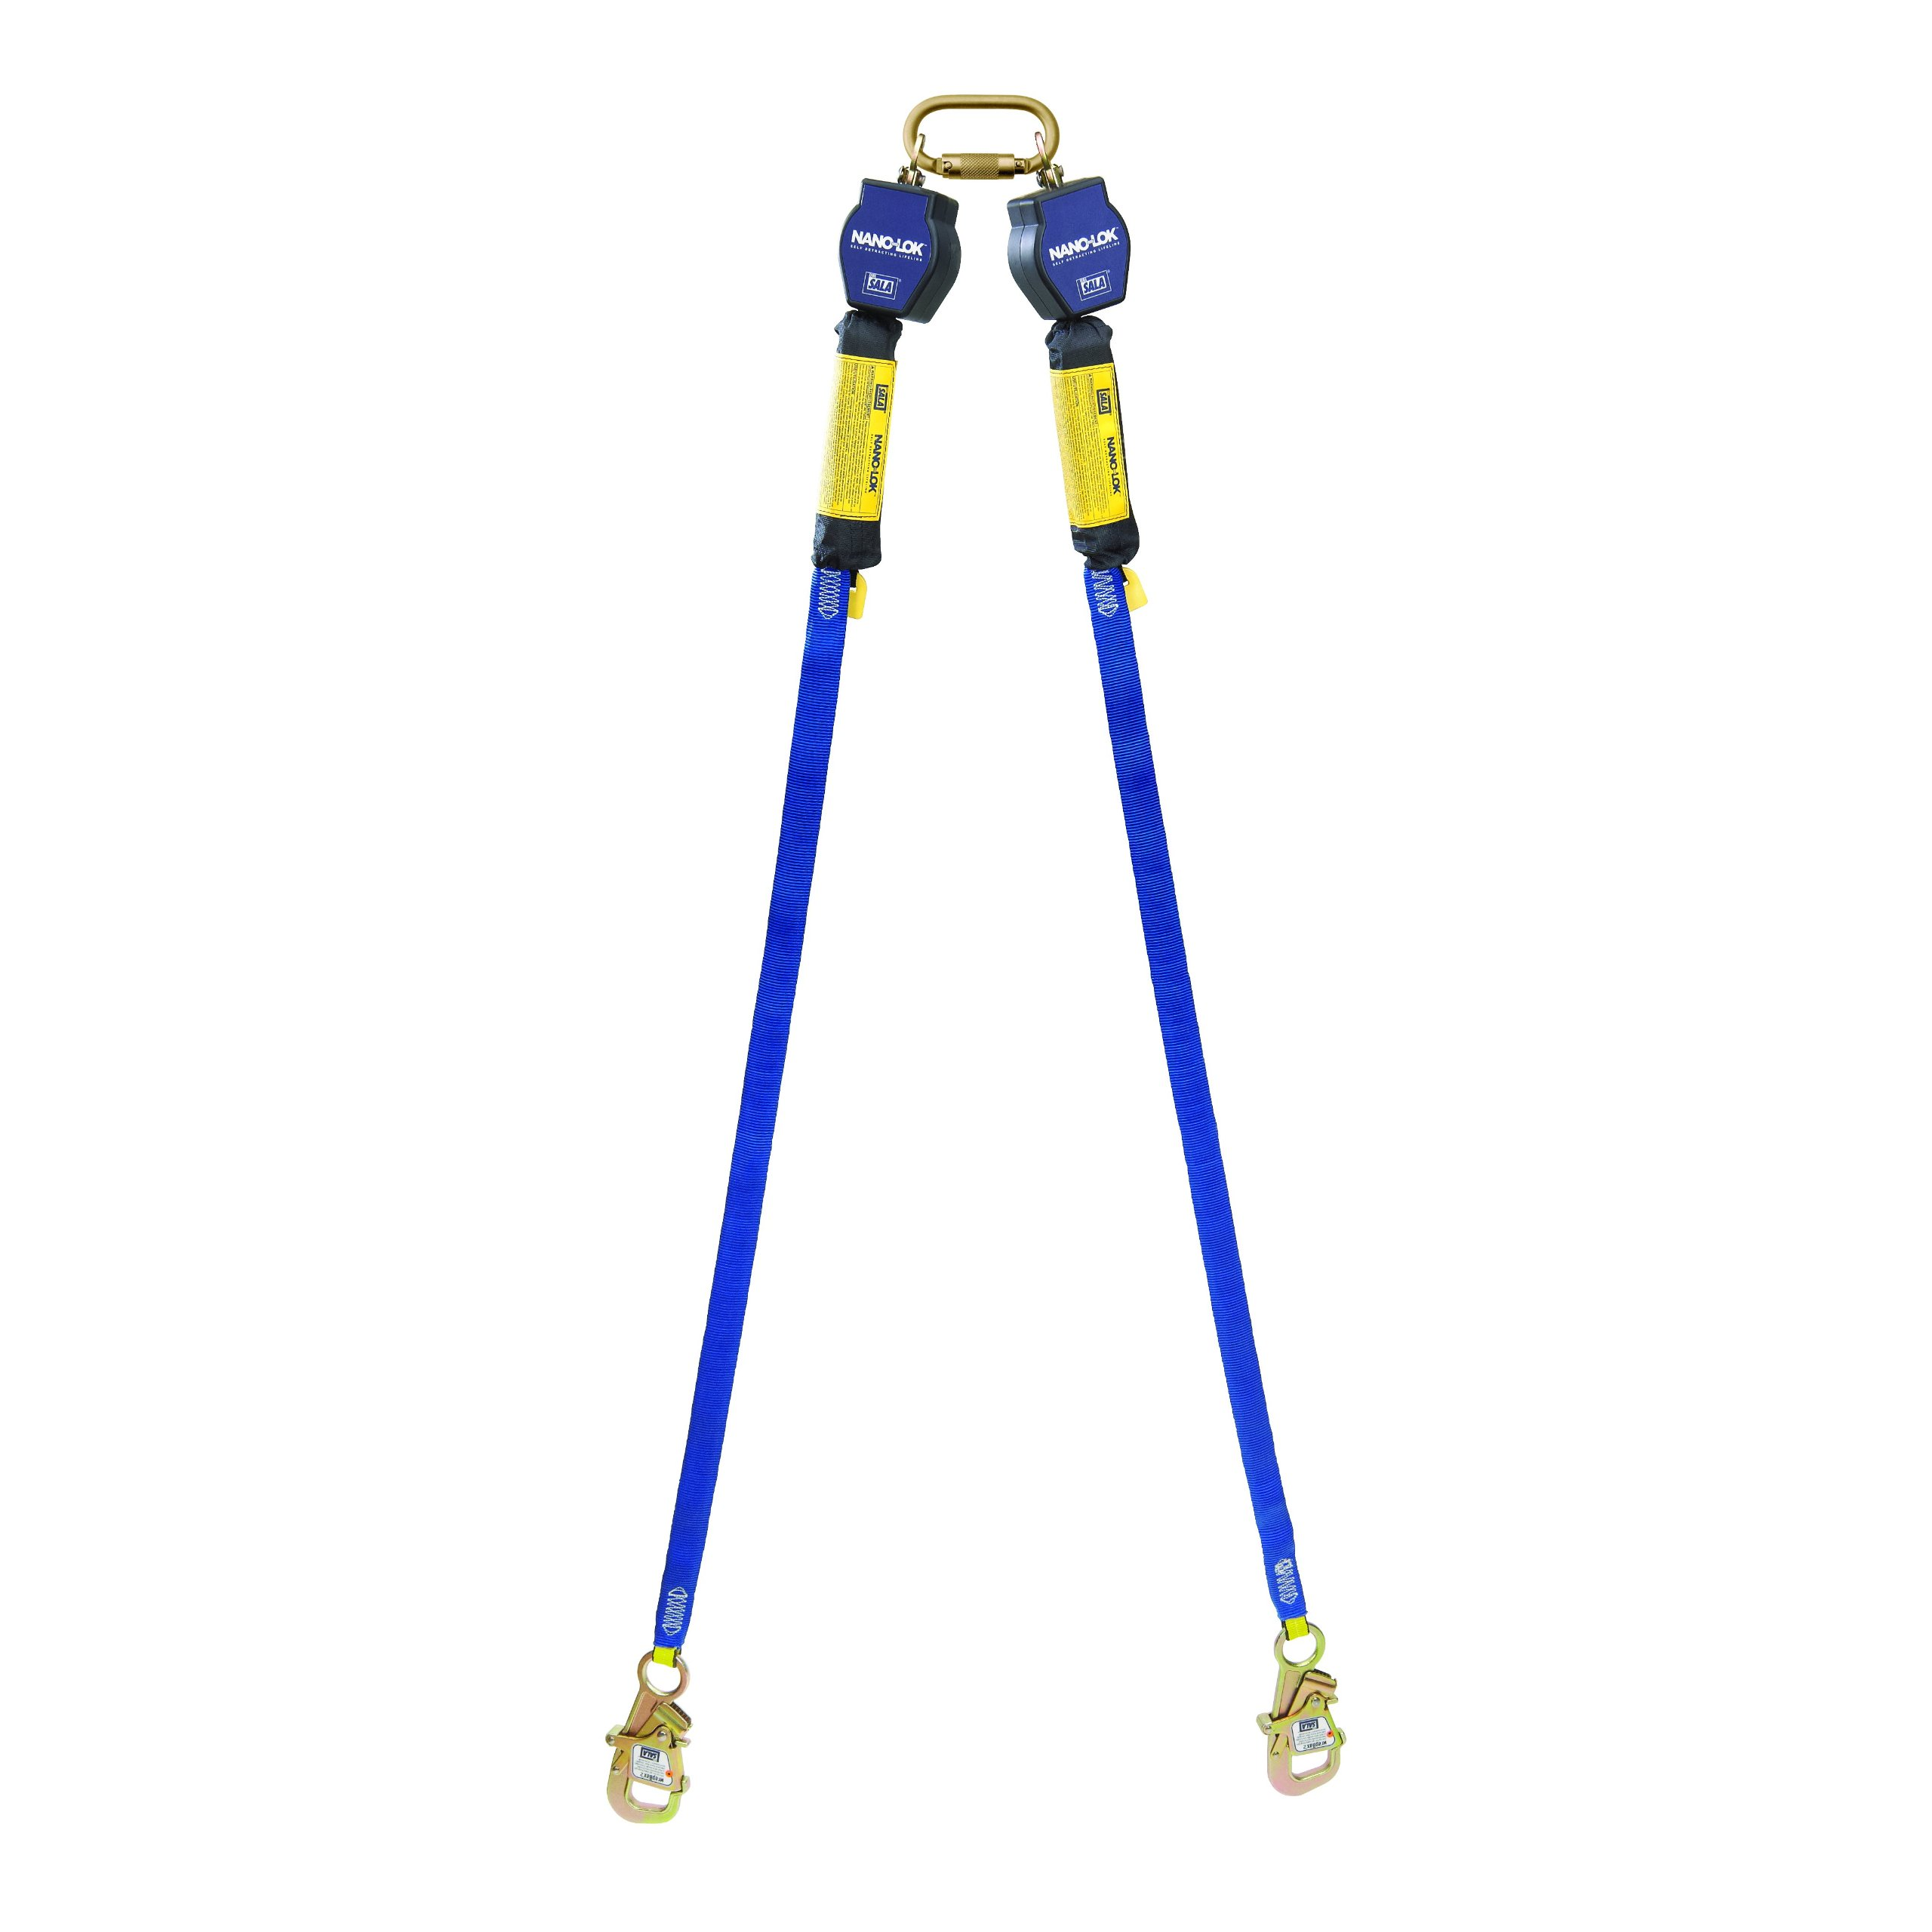 3M DBI-SALA Nano-Lok 3101373 Self Retracting Lifeline, 9', 3/4'' Dynema Polyester Web, Tie-Back Hook, Quick Connector For Fixed D-Ring Harness Mounting, Blue by 3M Fall Protection Business